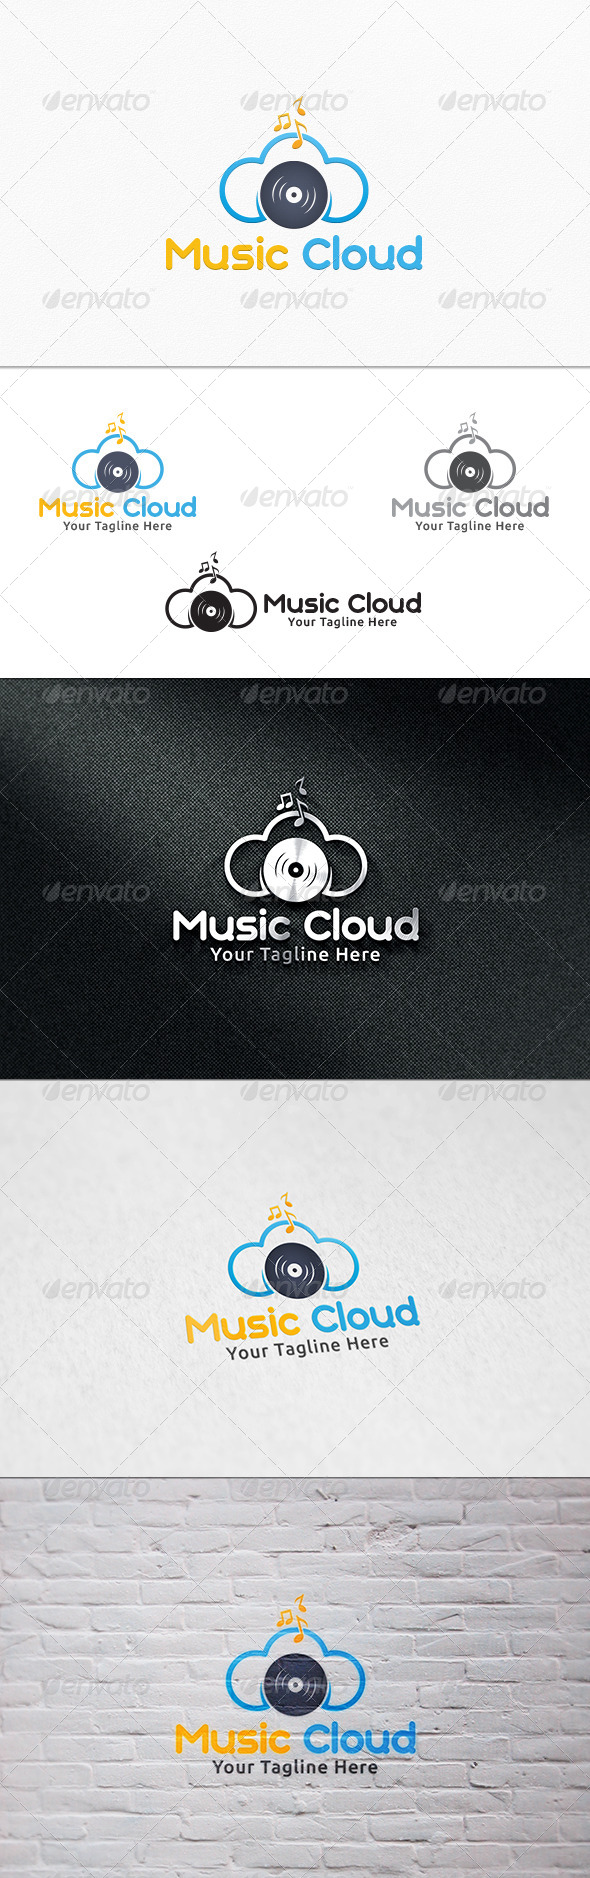 Music Cloud - Logo Template - Symbols Logo Templates